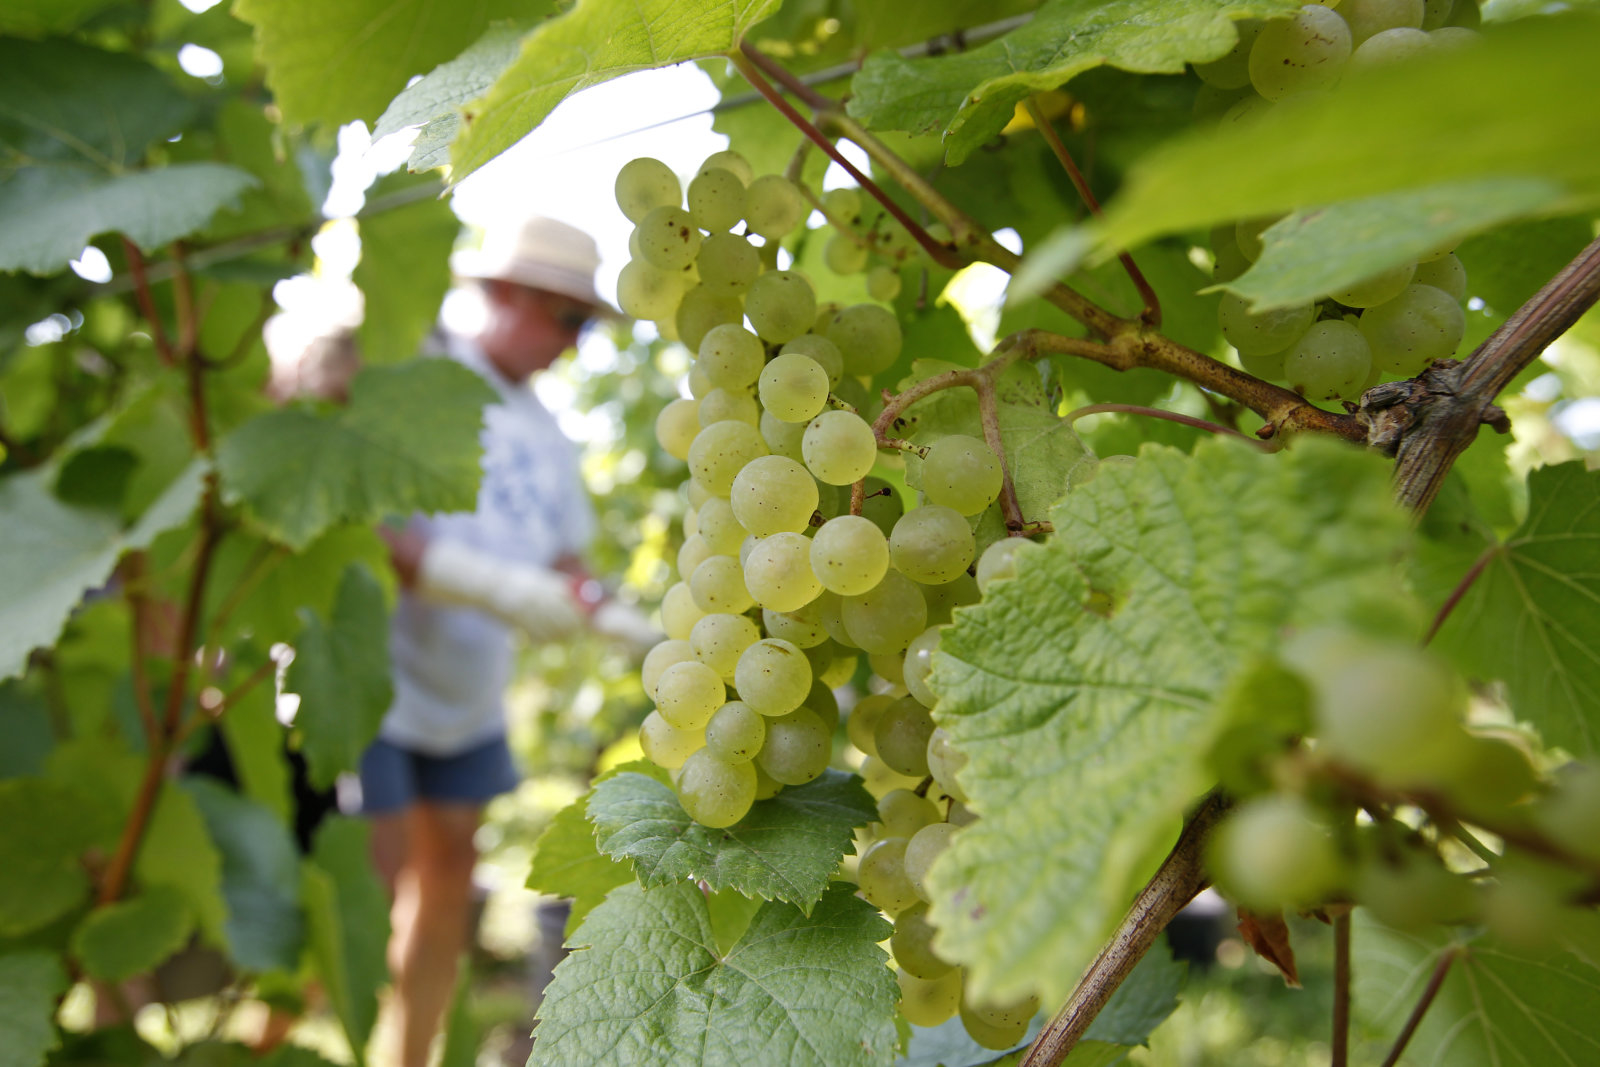 A seasonal worker harvests grapes of Auxerrois intended to make Cremant sparkling wine at the  Ammerschwihr vineyard in the Alsace region near Colmar, eastern France, August 24, 2011. The harvest of grapes for Cremant d'Alsace, a sparkling wine made according to the Champagne method, traditionally opens the harvest season in Alsace, specially early this year due to climatic reasons. REUTERS/Vincent Kessler (FRANCE - Tags: AGRICULTURE FOOD)